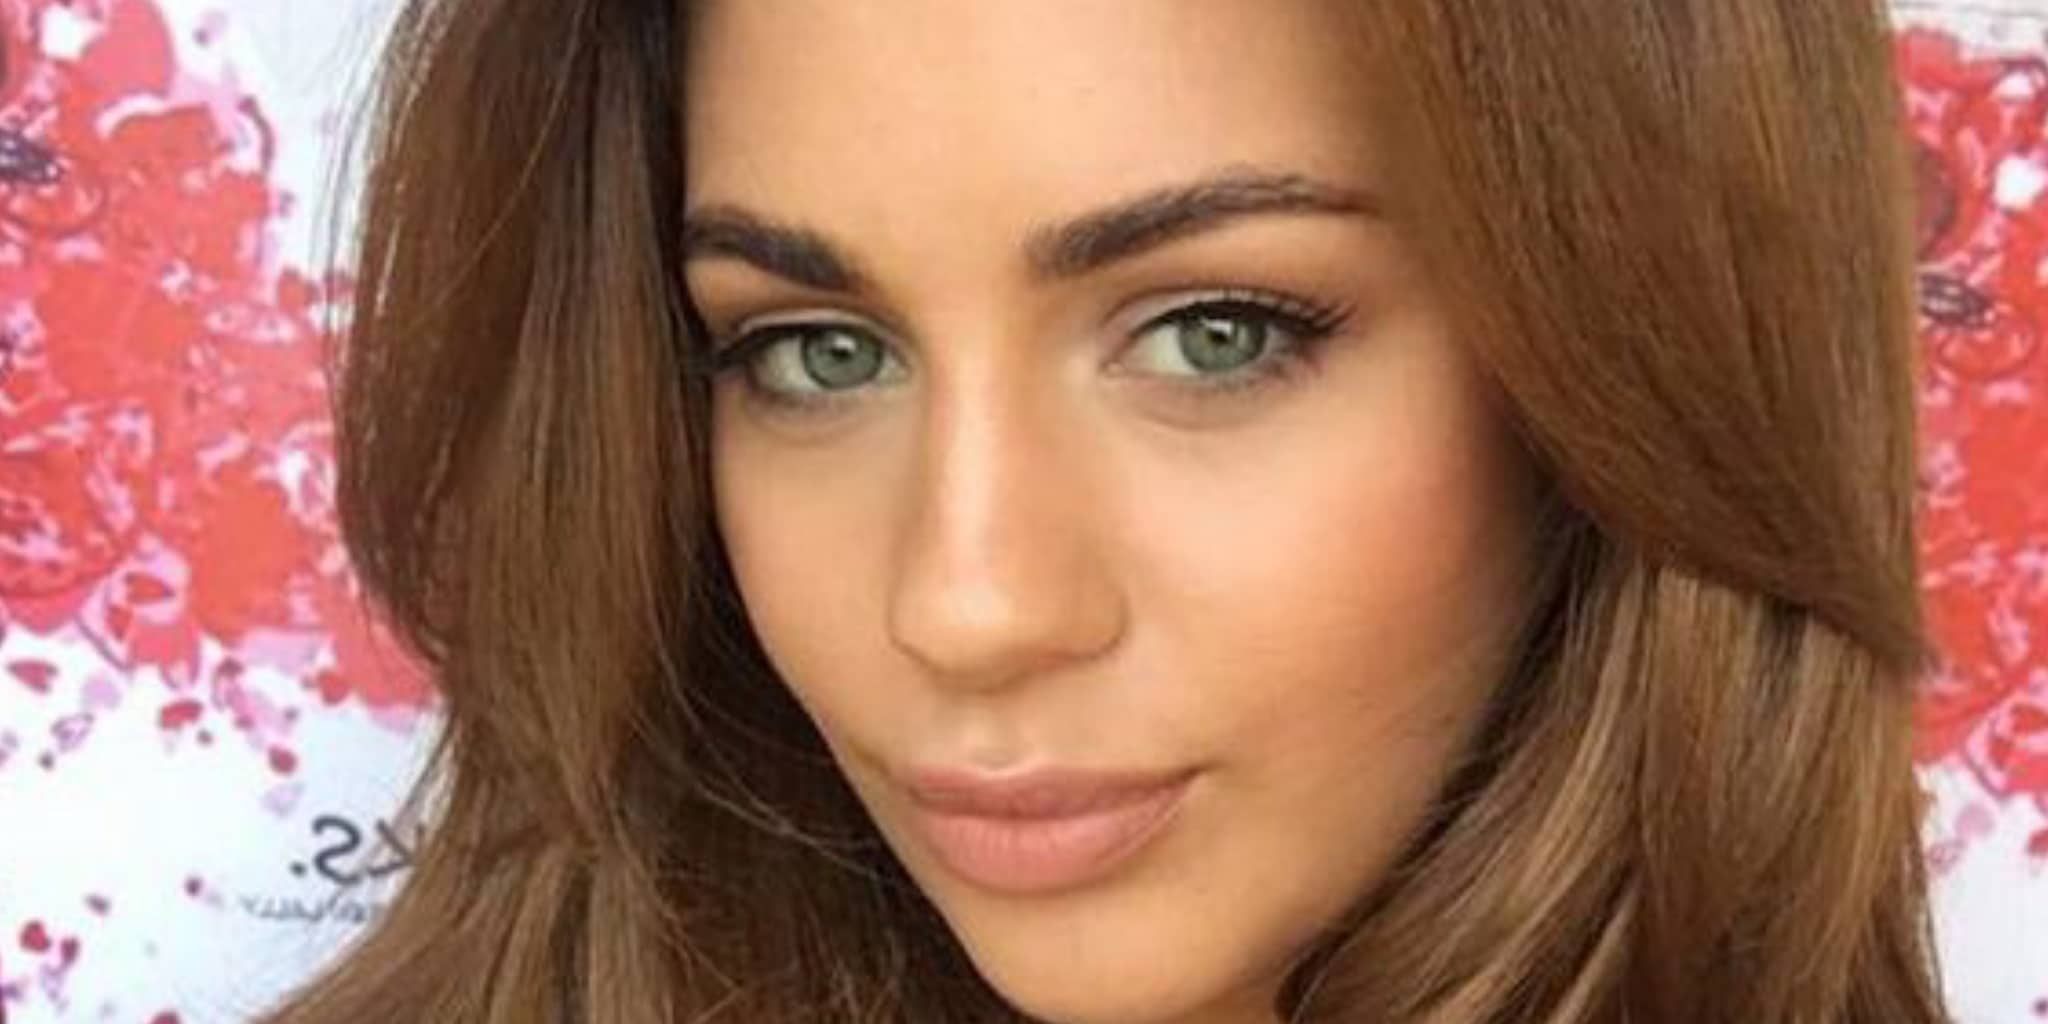 Holly Peers' biography: age, parents, career, relationship